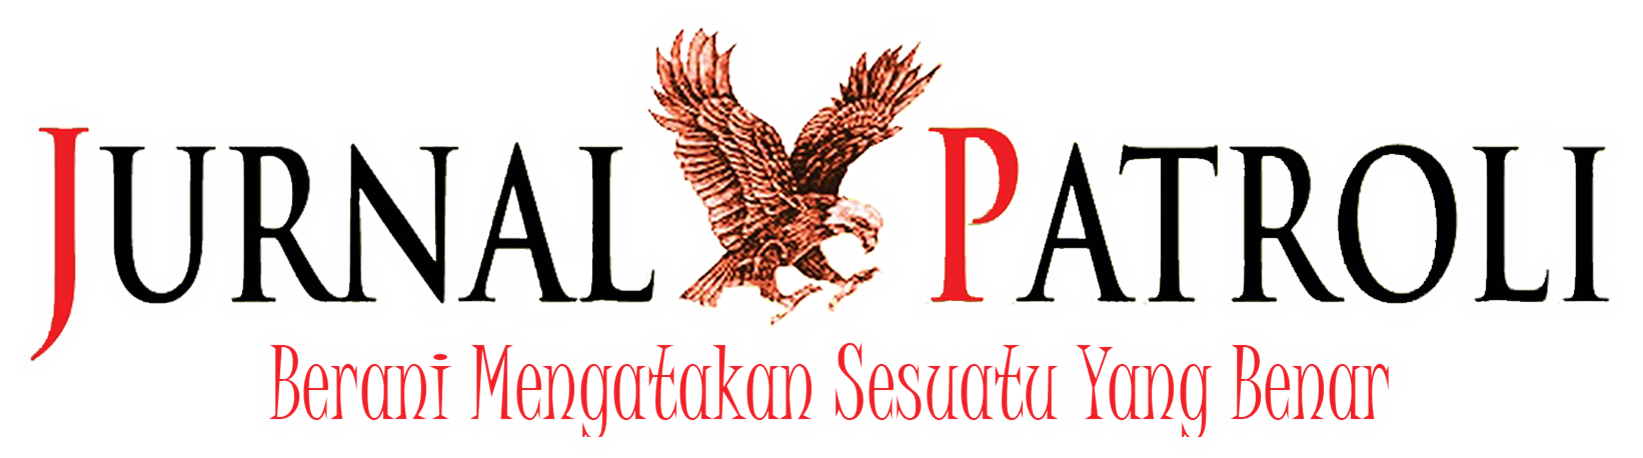 Jurnal Patroli News